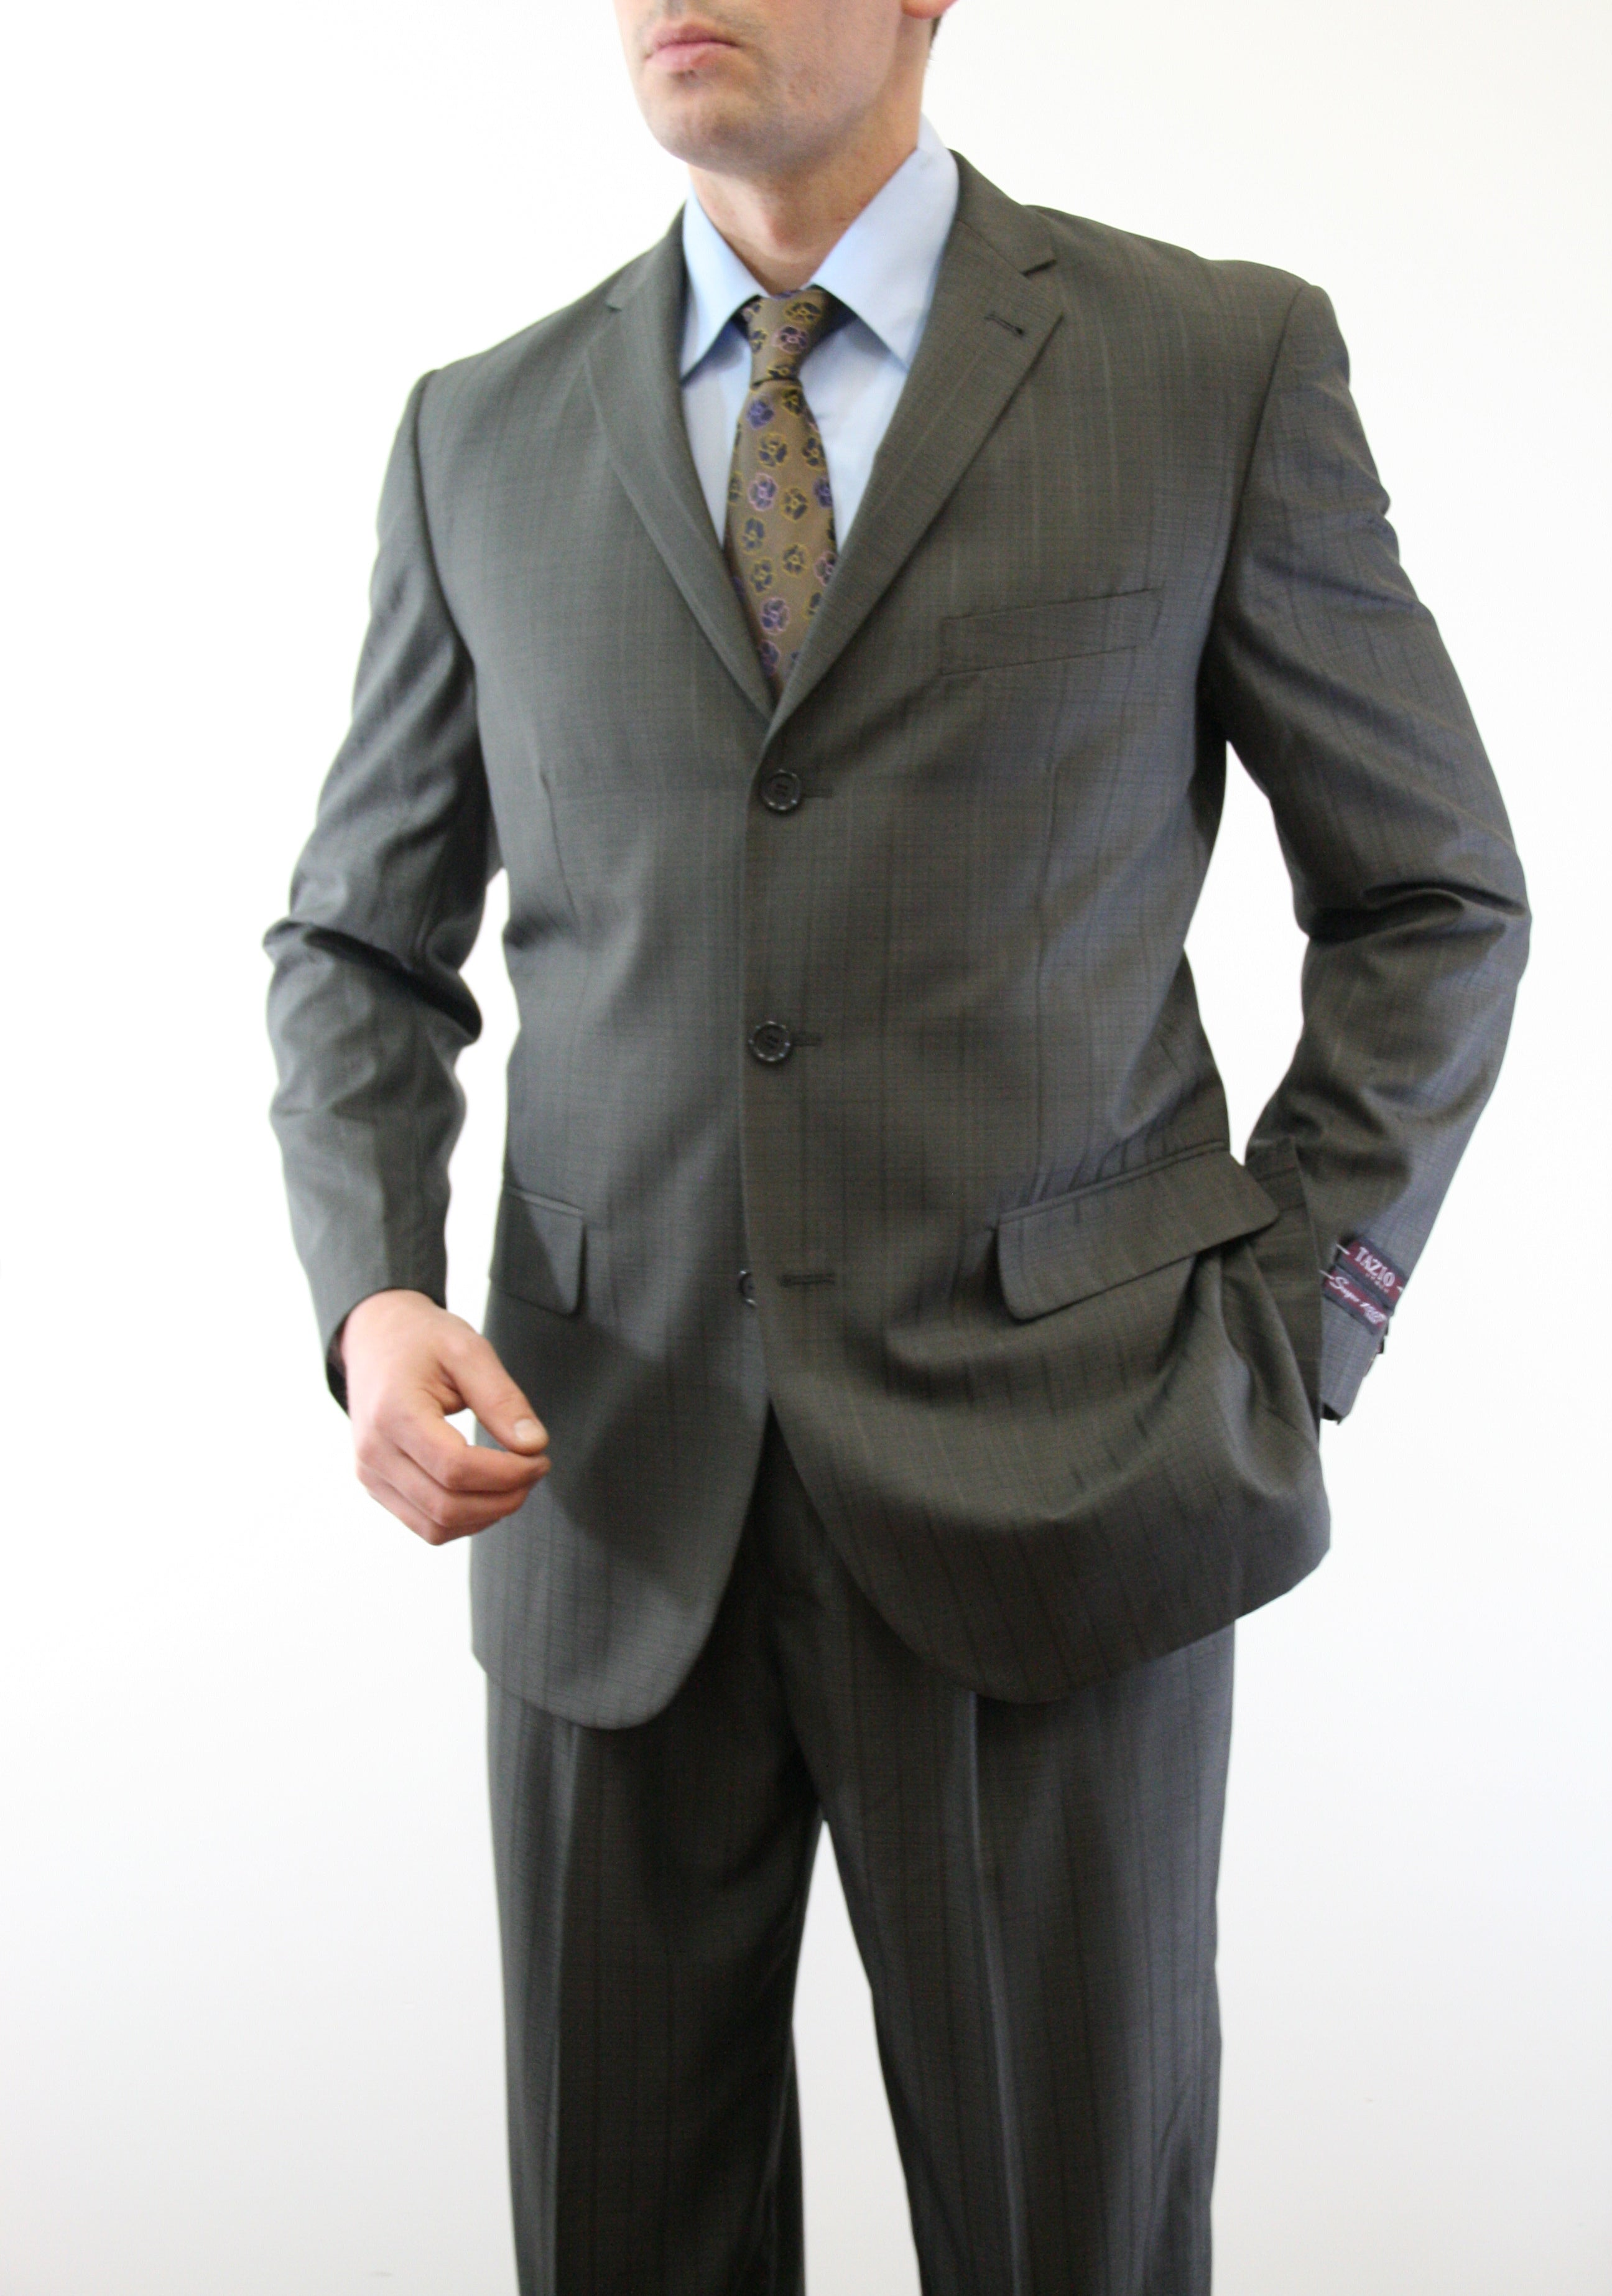 Grey Suit For Men Formal Suits For All Ocassions M111-04